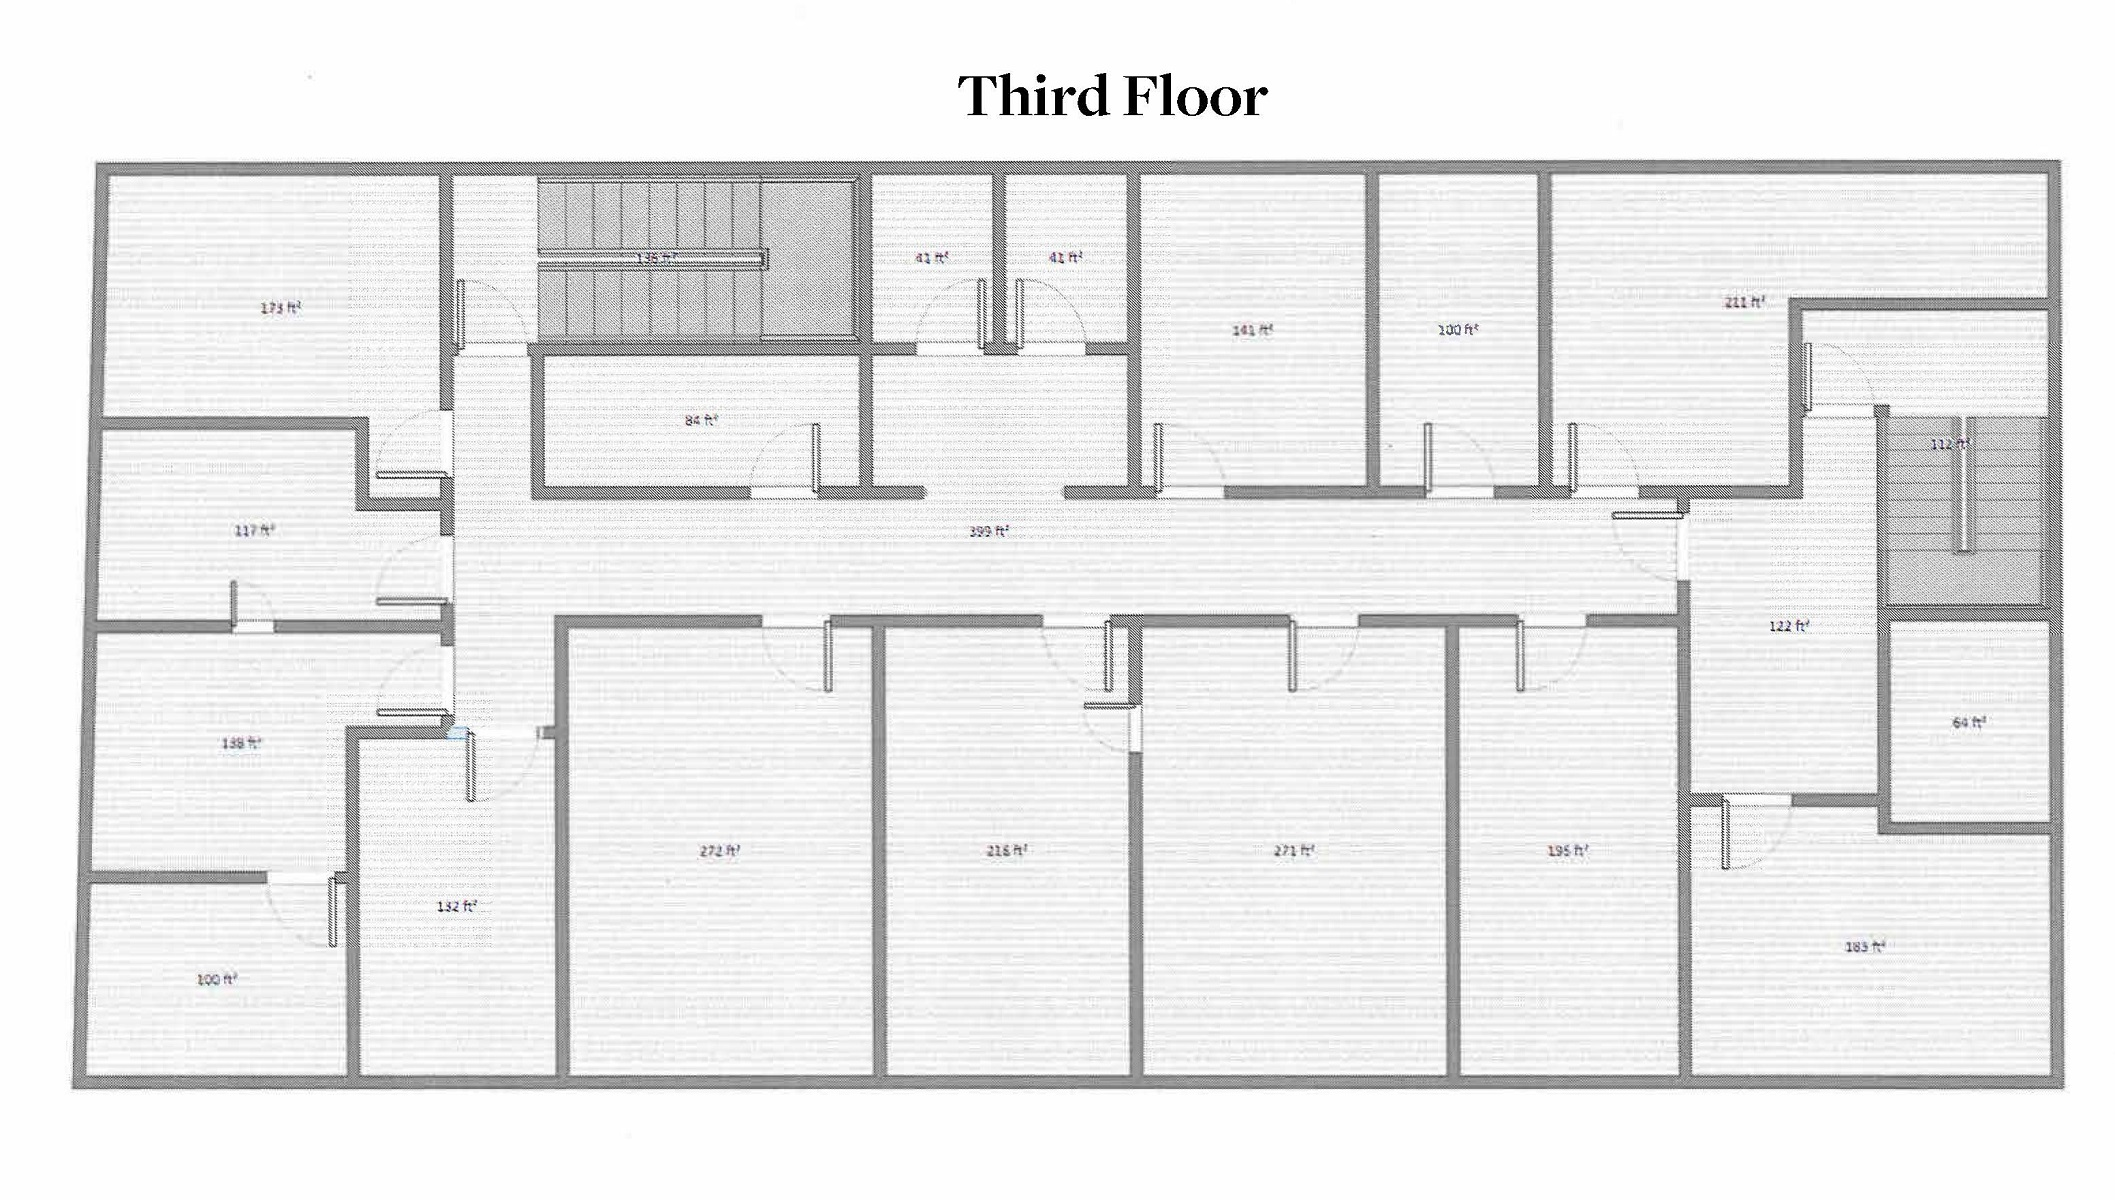 Floor Plan Image 3